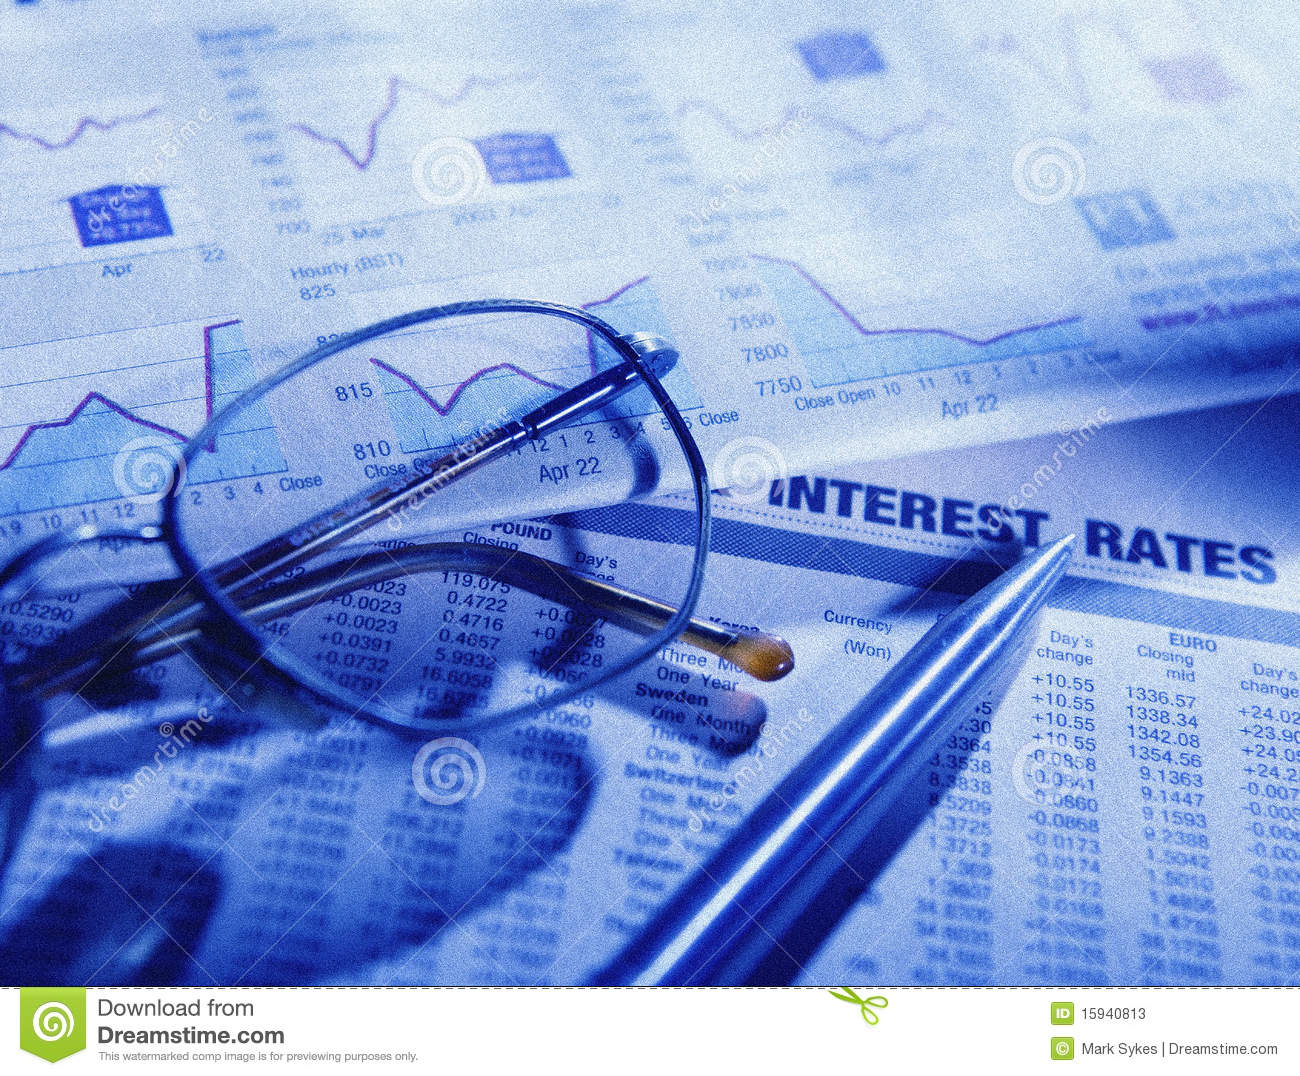 financial paper Find the latest happenings in the financial sector and stay up to date with changing trends in business markets read trading and investing advice from professionals.